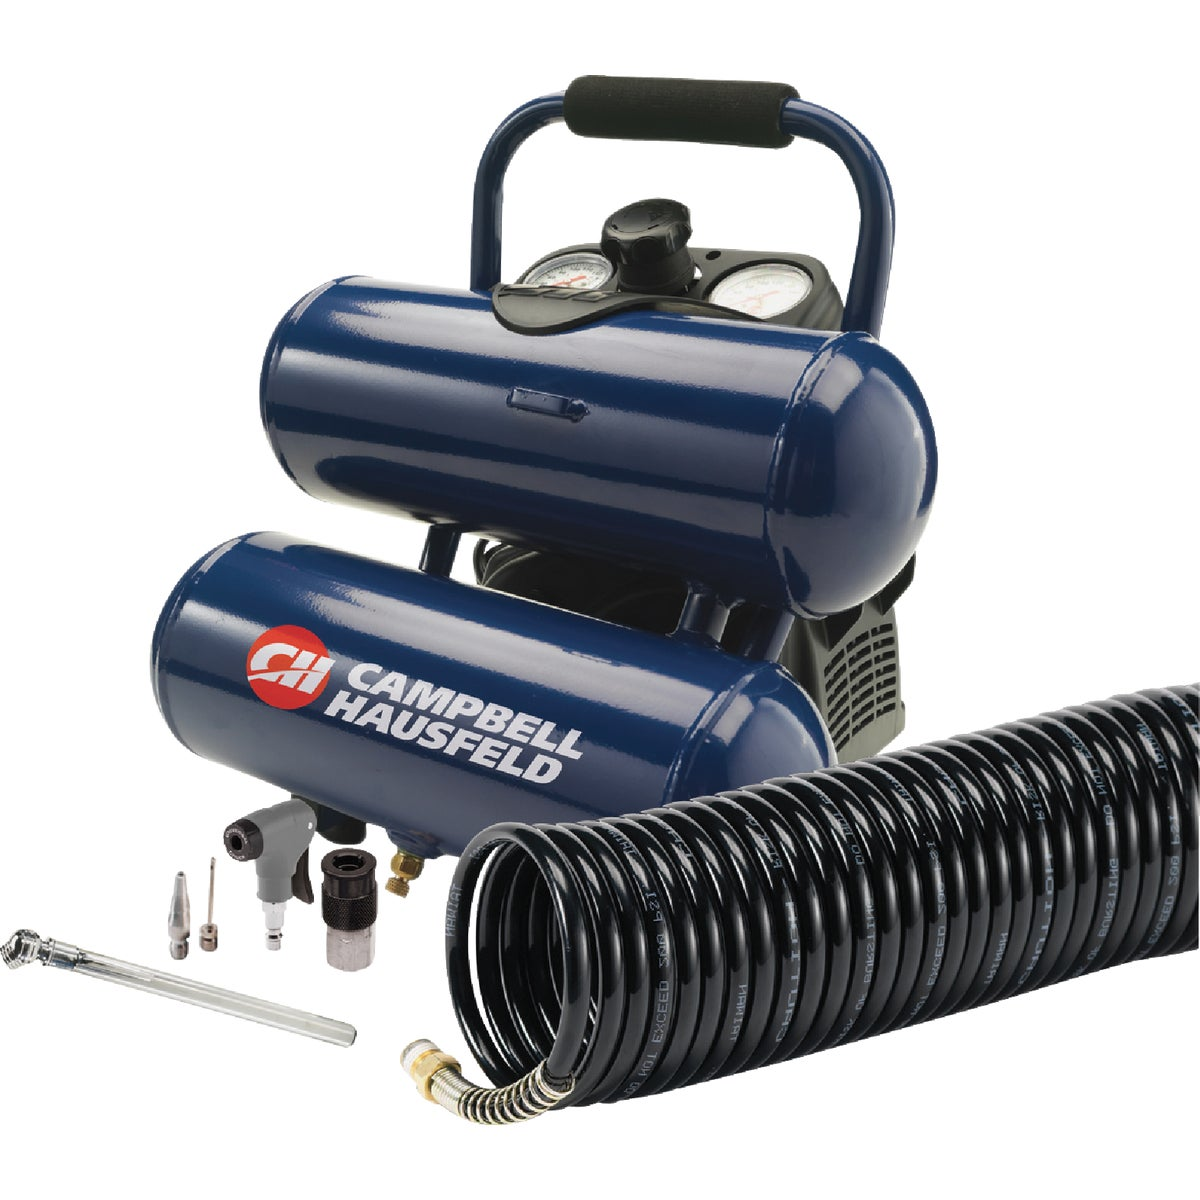 125 PSI AIR COMPRESSOR